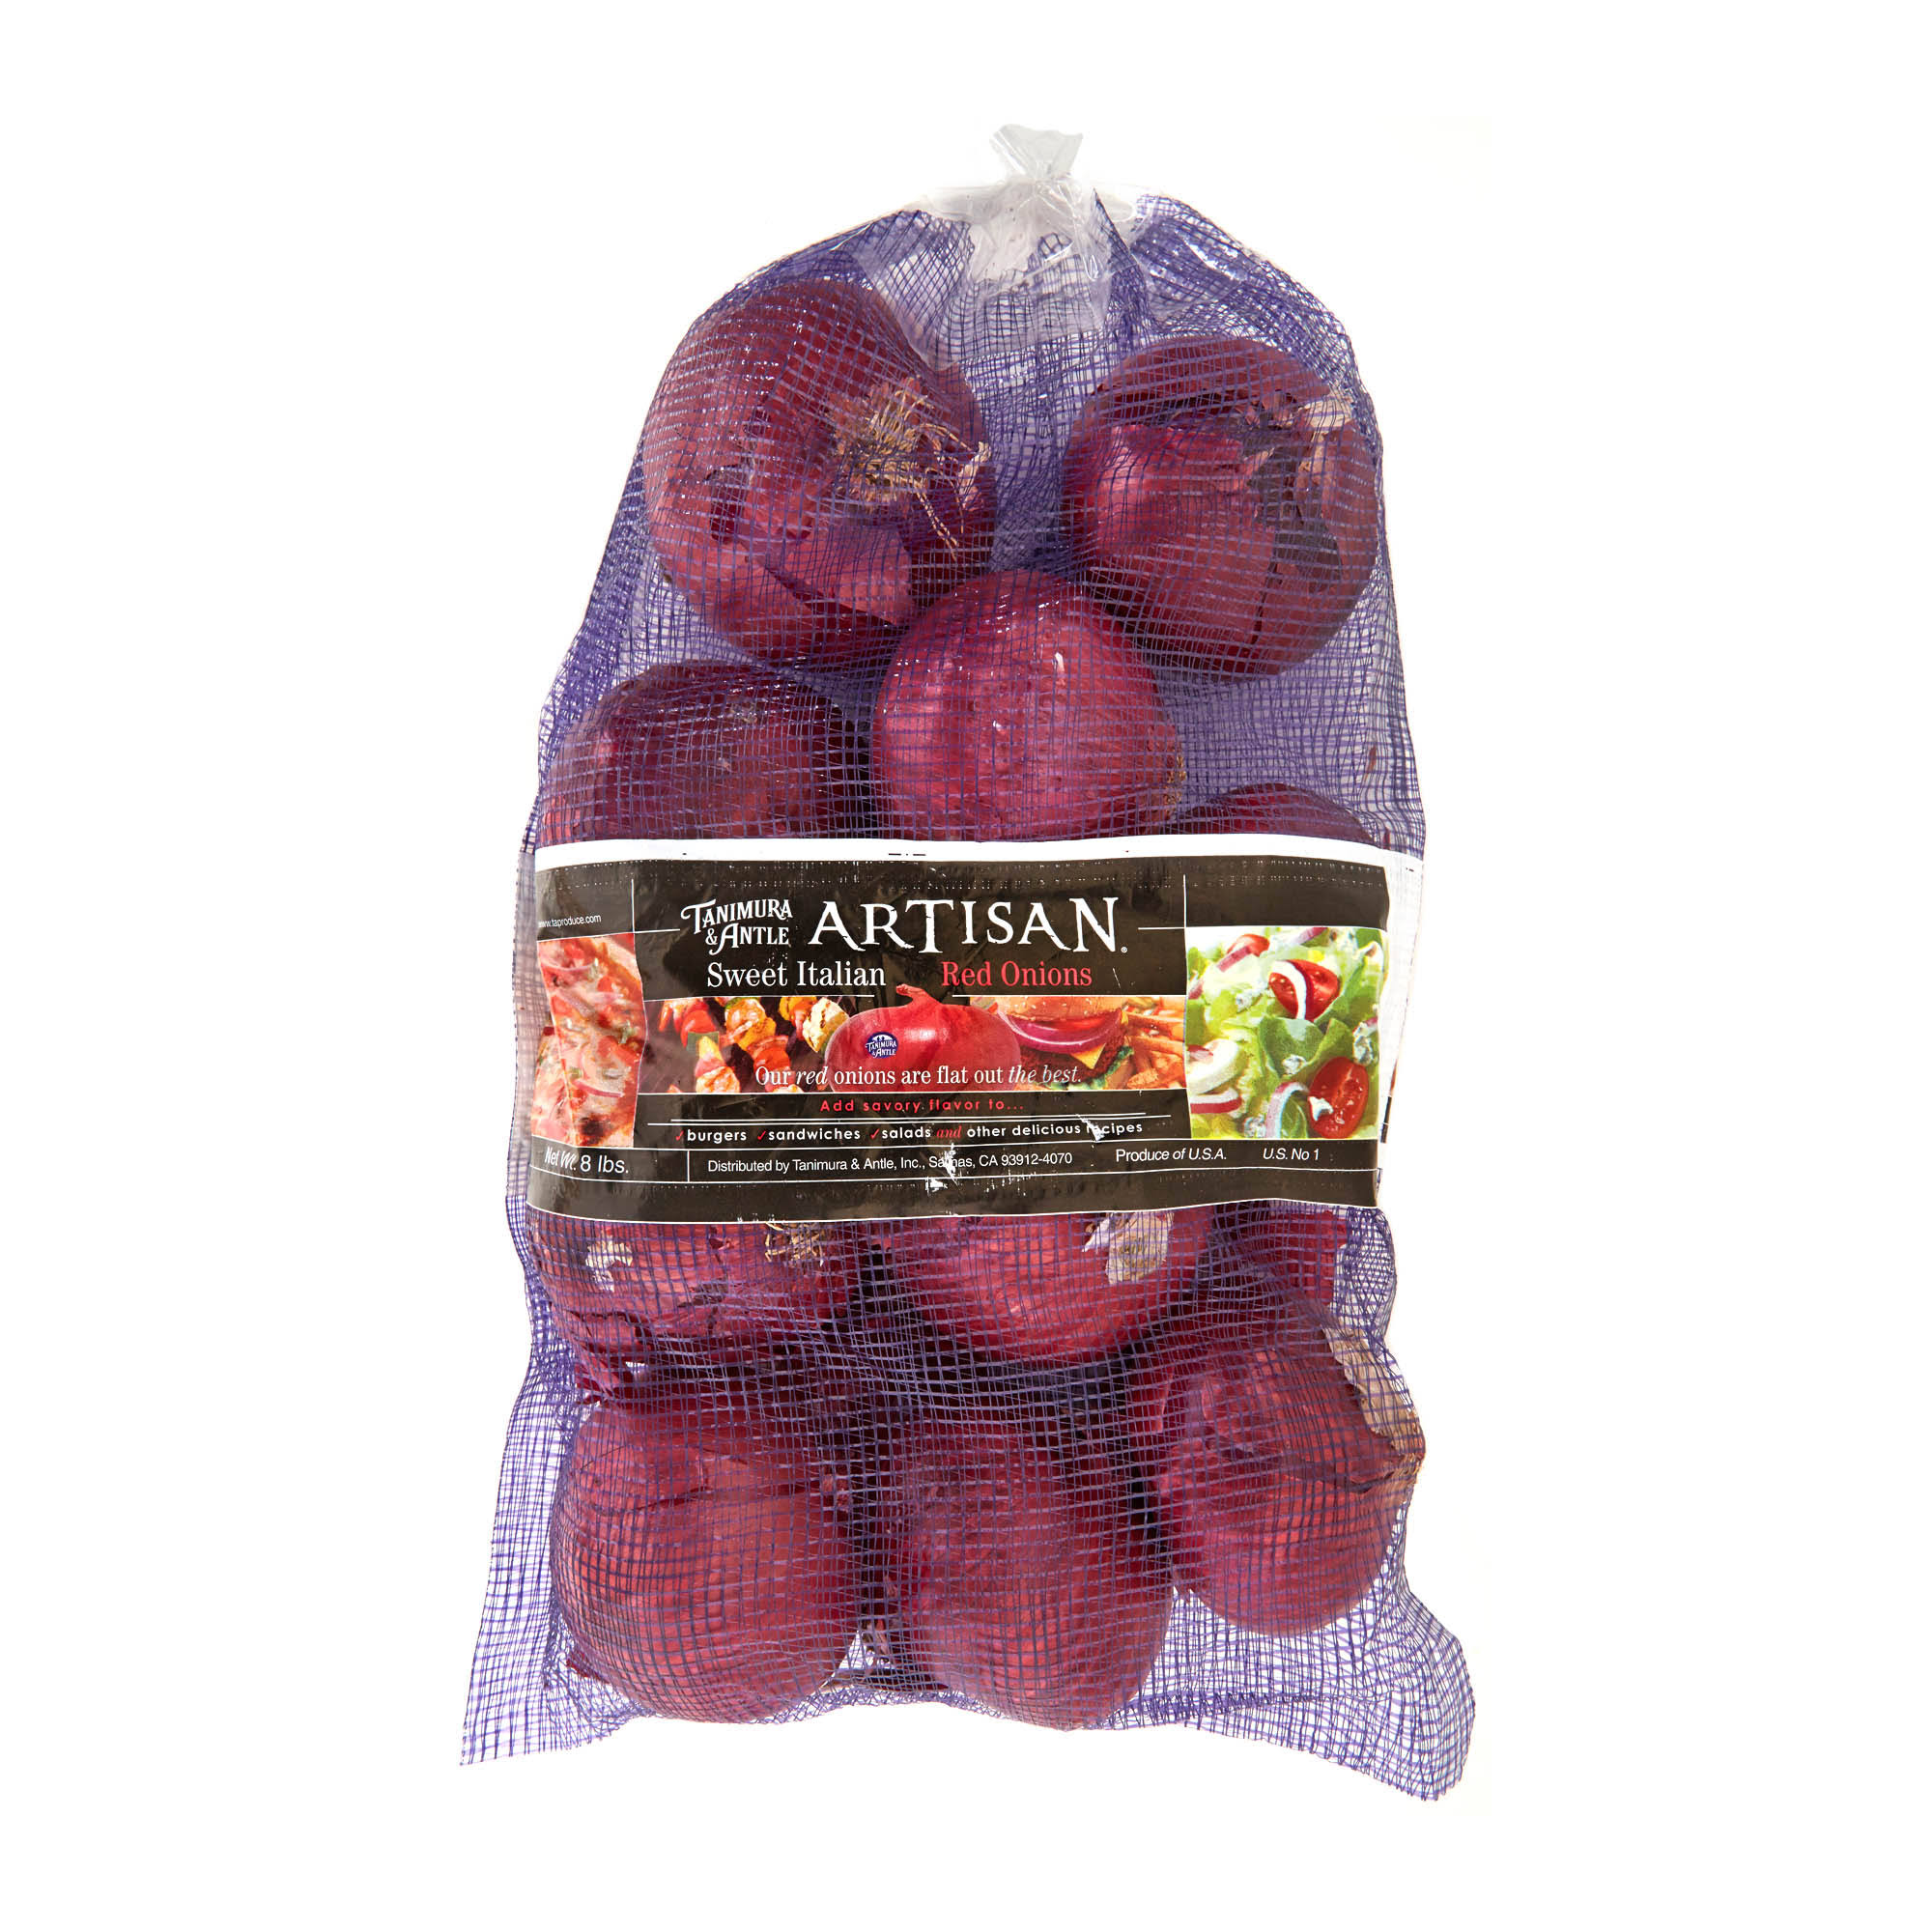 Tanimura and Antle Sweet Jumbo Red Onions - 8 lb bag